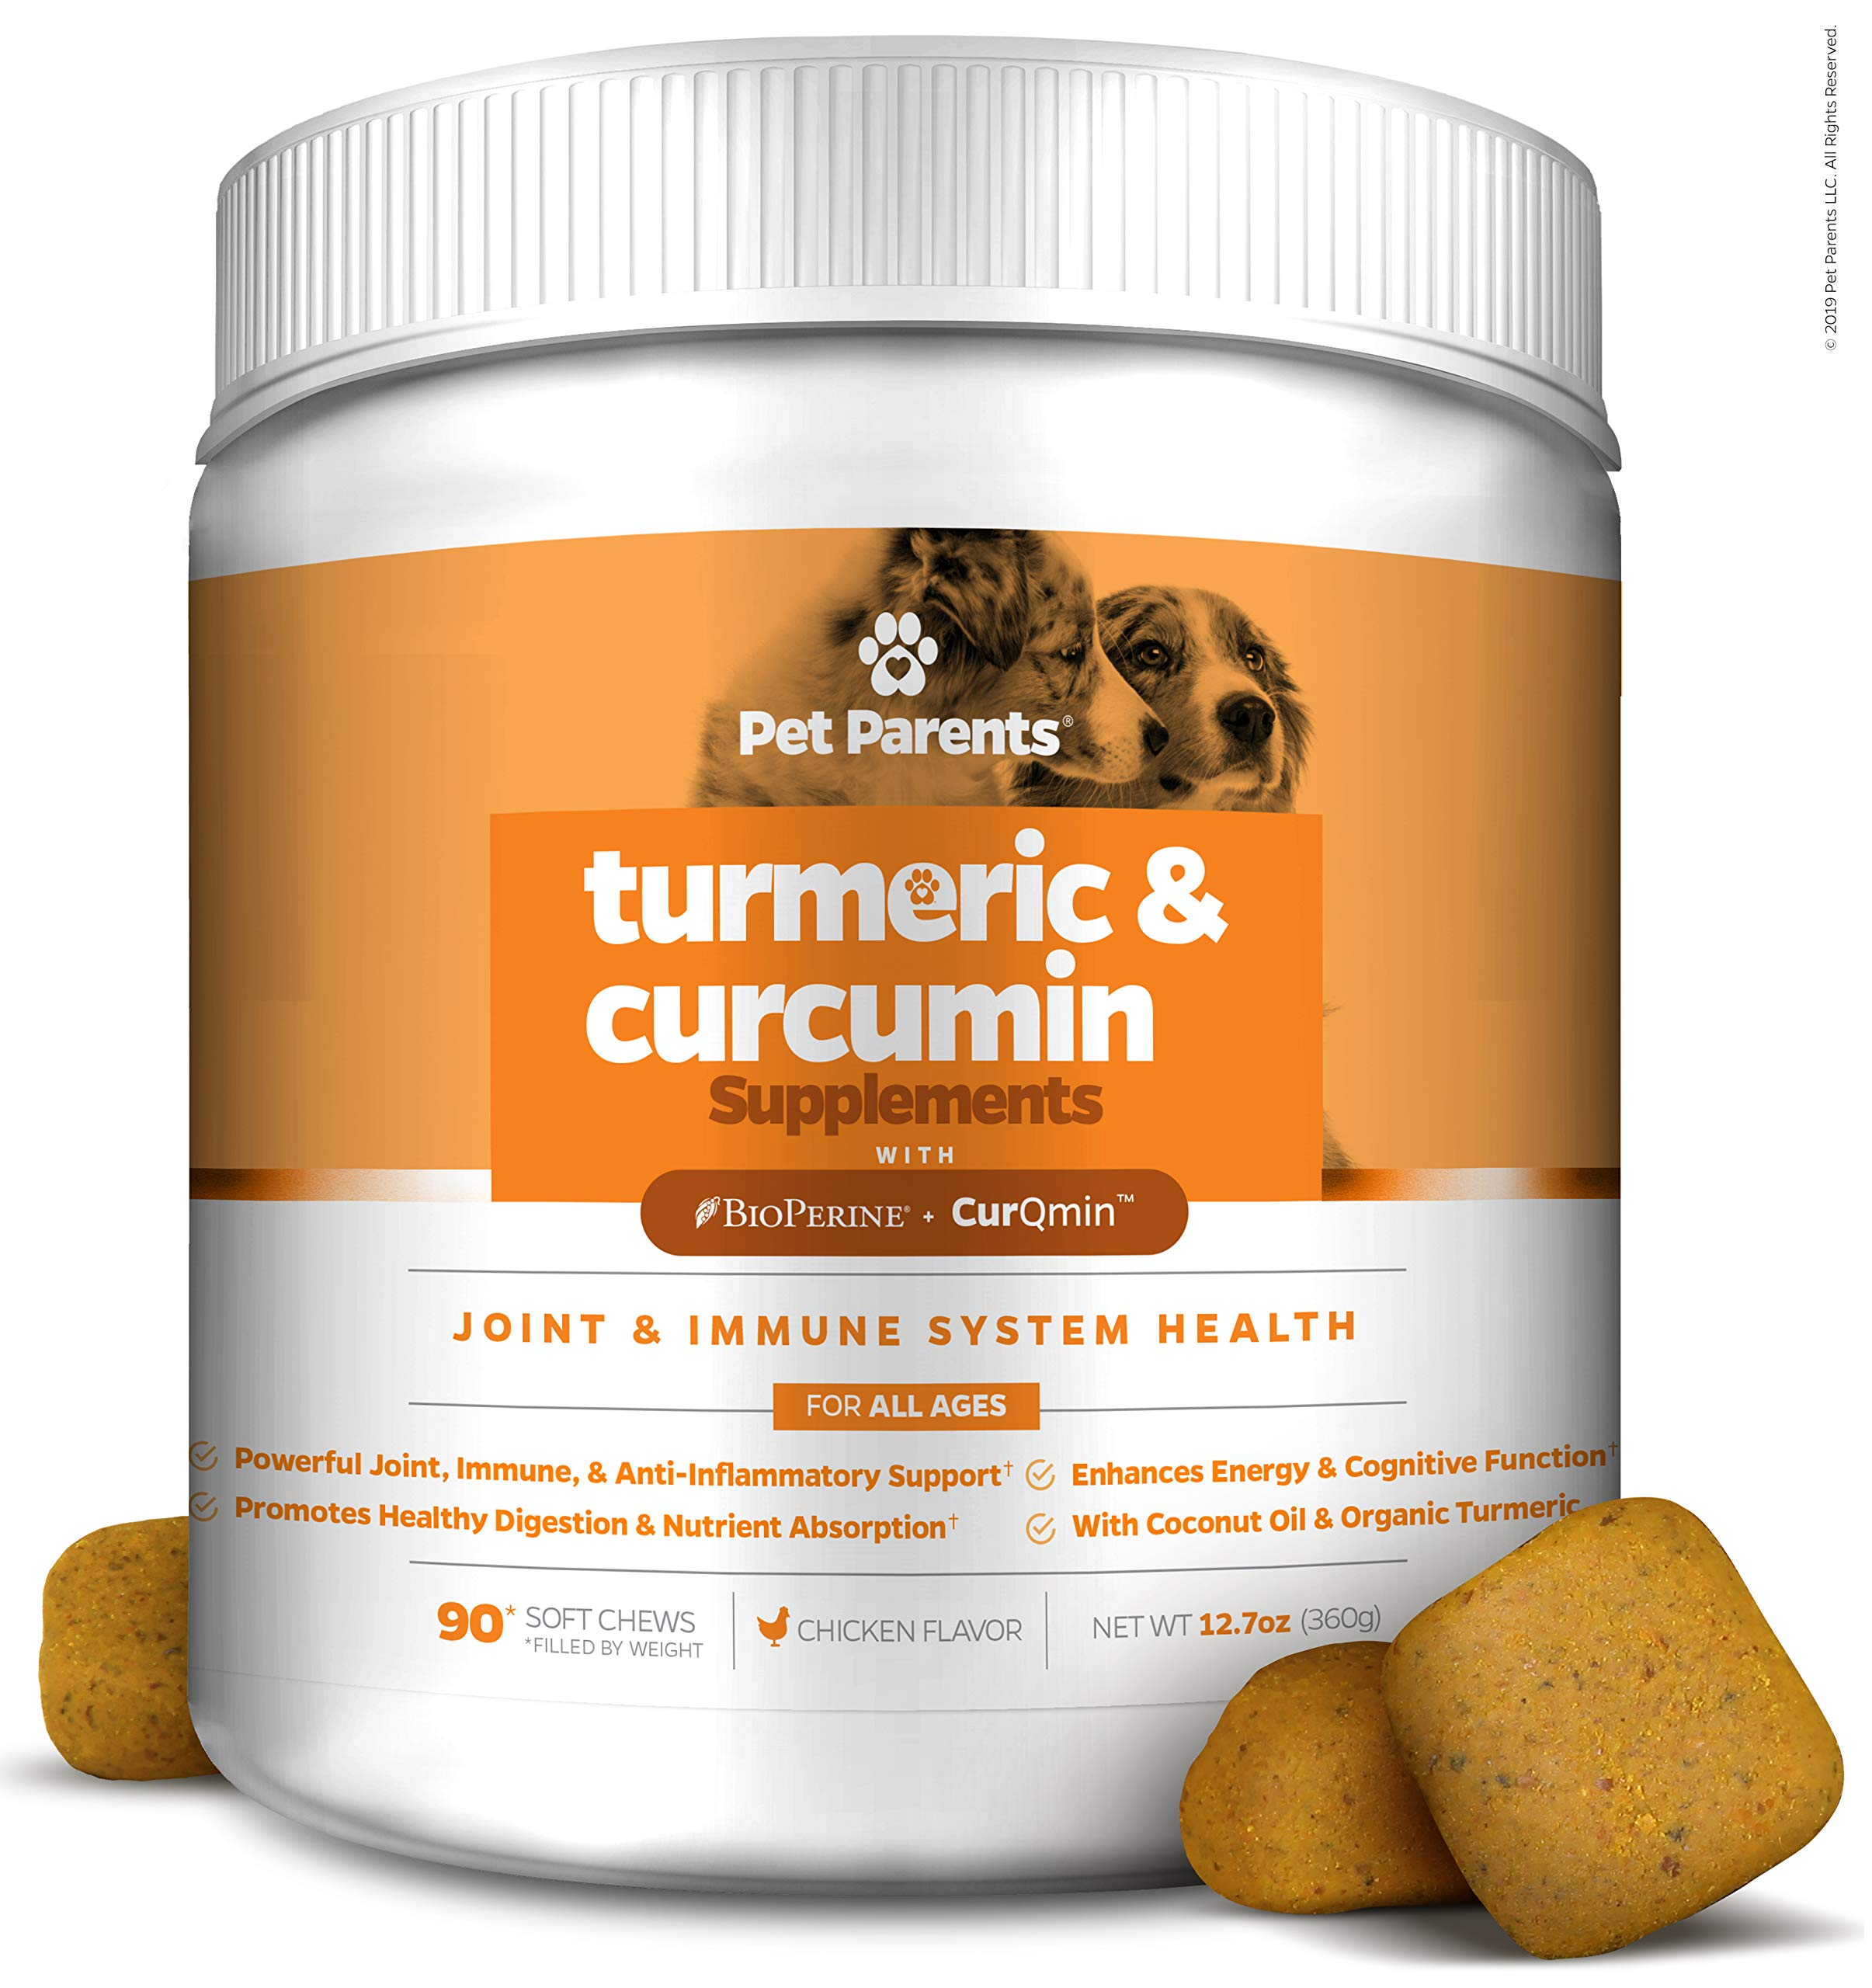 Pet Parents USA Turmeric for Dogs 4g 90c - K9 Joint, Dog Joint & Dog Immune Support, Joint Pain Relief for Dogs, Dog Arthritis Pain Relief + Dog Aspirin with Curcumin, BioPerine + Dog Joint Supplement by Pet Parents